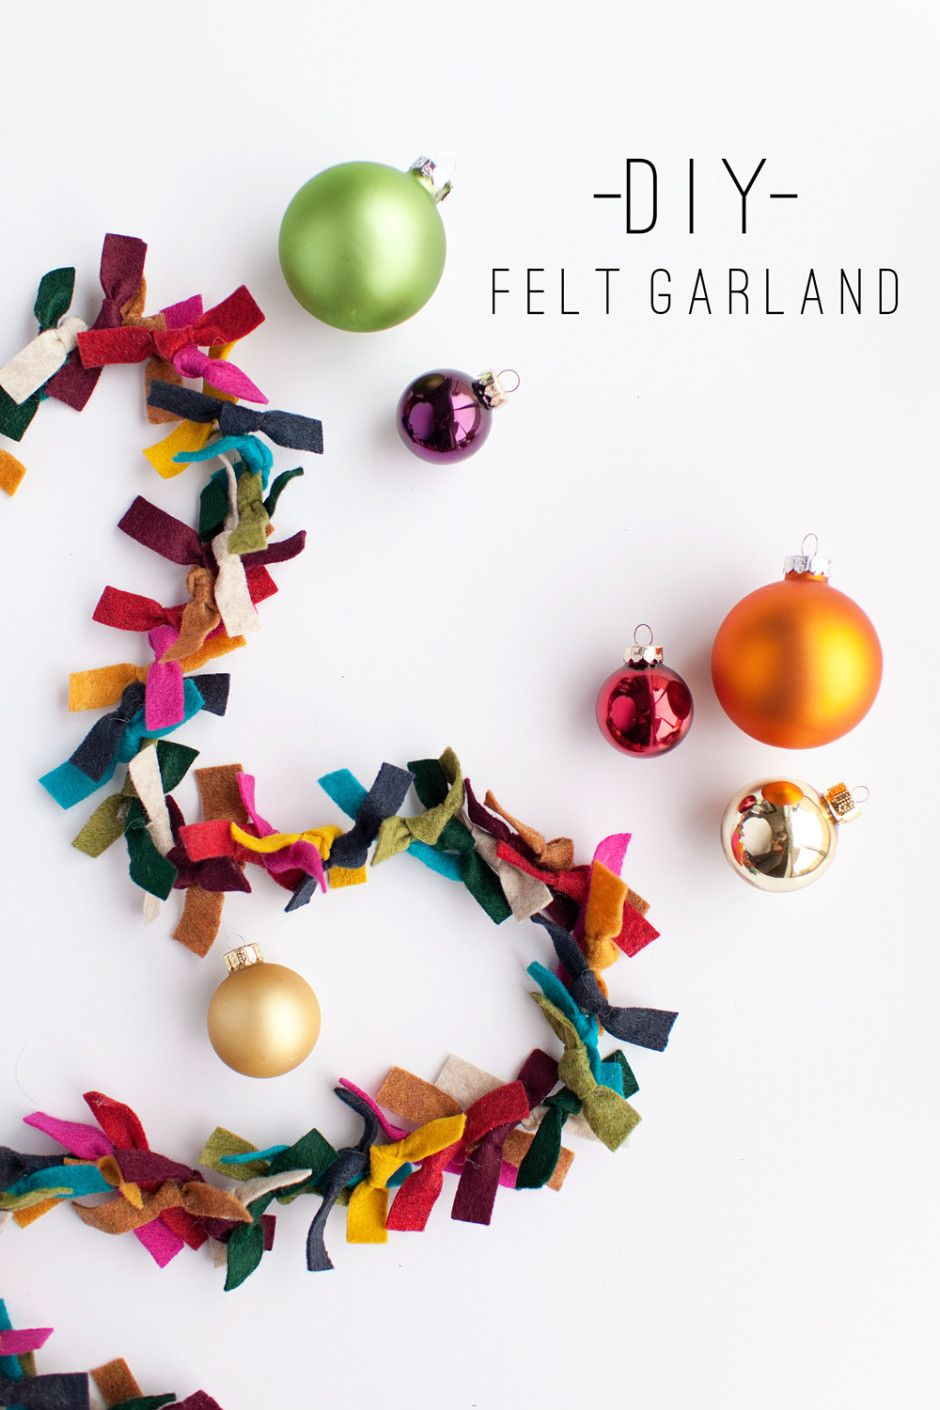 TELL FELT GARLAND Diy christmas garland, Diy felt